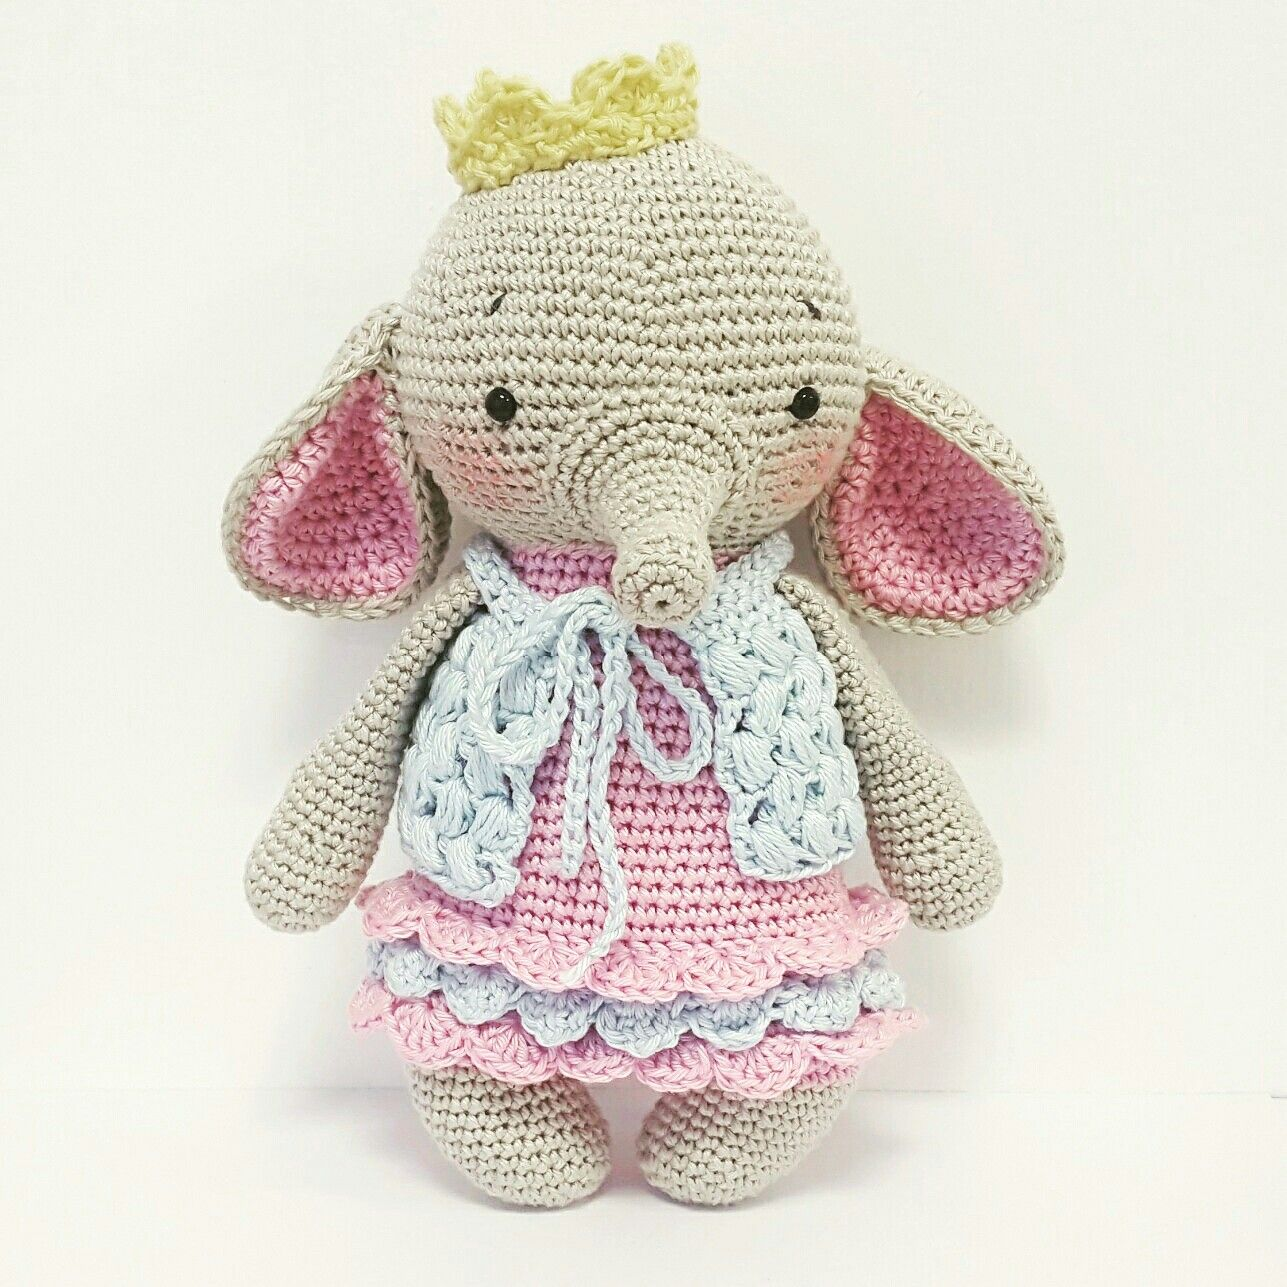 Amaloudesigns Crochet Pattern Little Ava Elephant Amigurumi